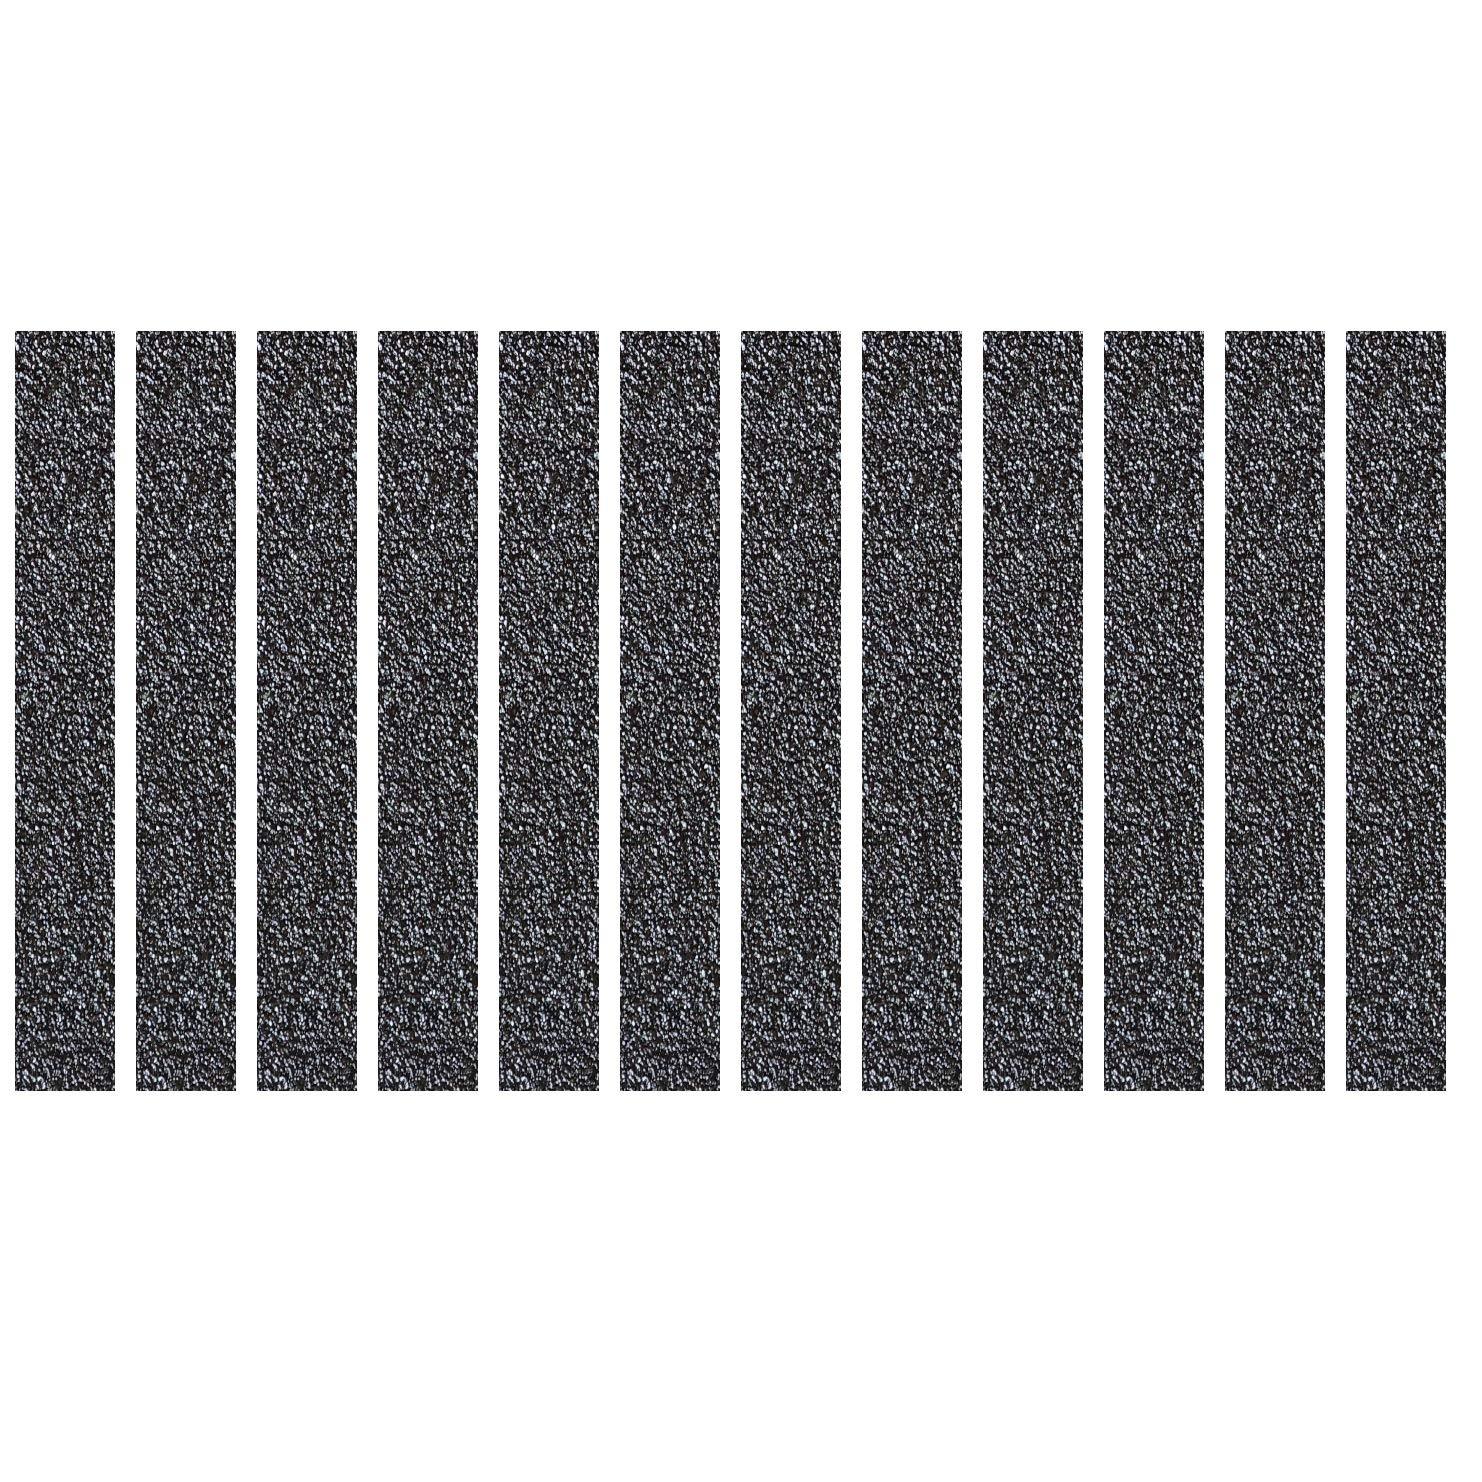 S&X Non Slip Tape,Indoor & Outdoor,Aluminum Based Safety Treads,Slip Resistant Strips for Uneven or Irregular Surfaces,2''X15'',12 Pcs/Pack,Black